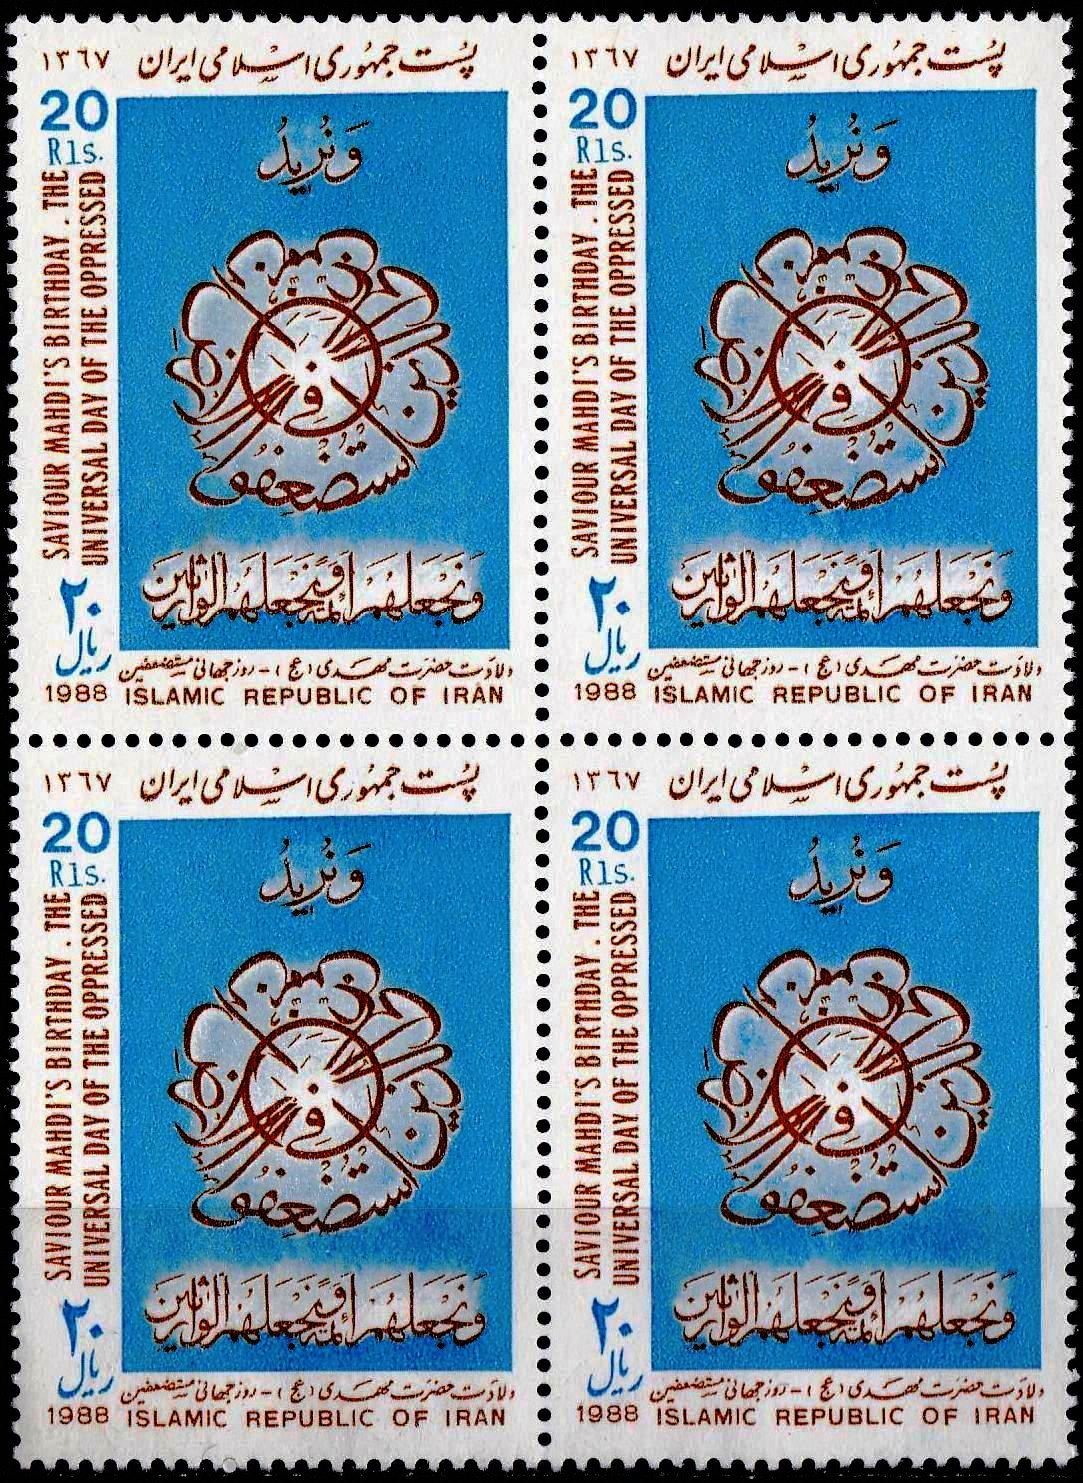 Iran 1967 Stamp United Nations Stamps Dayy Fireworks MNH